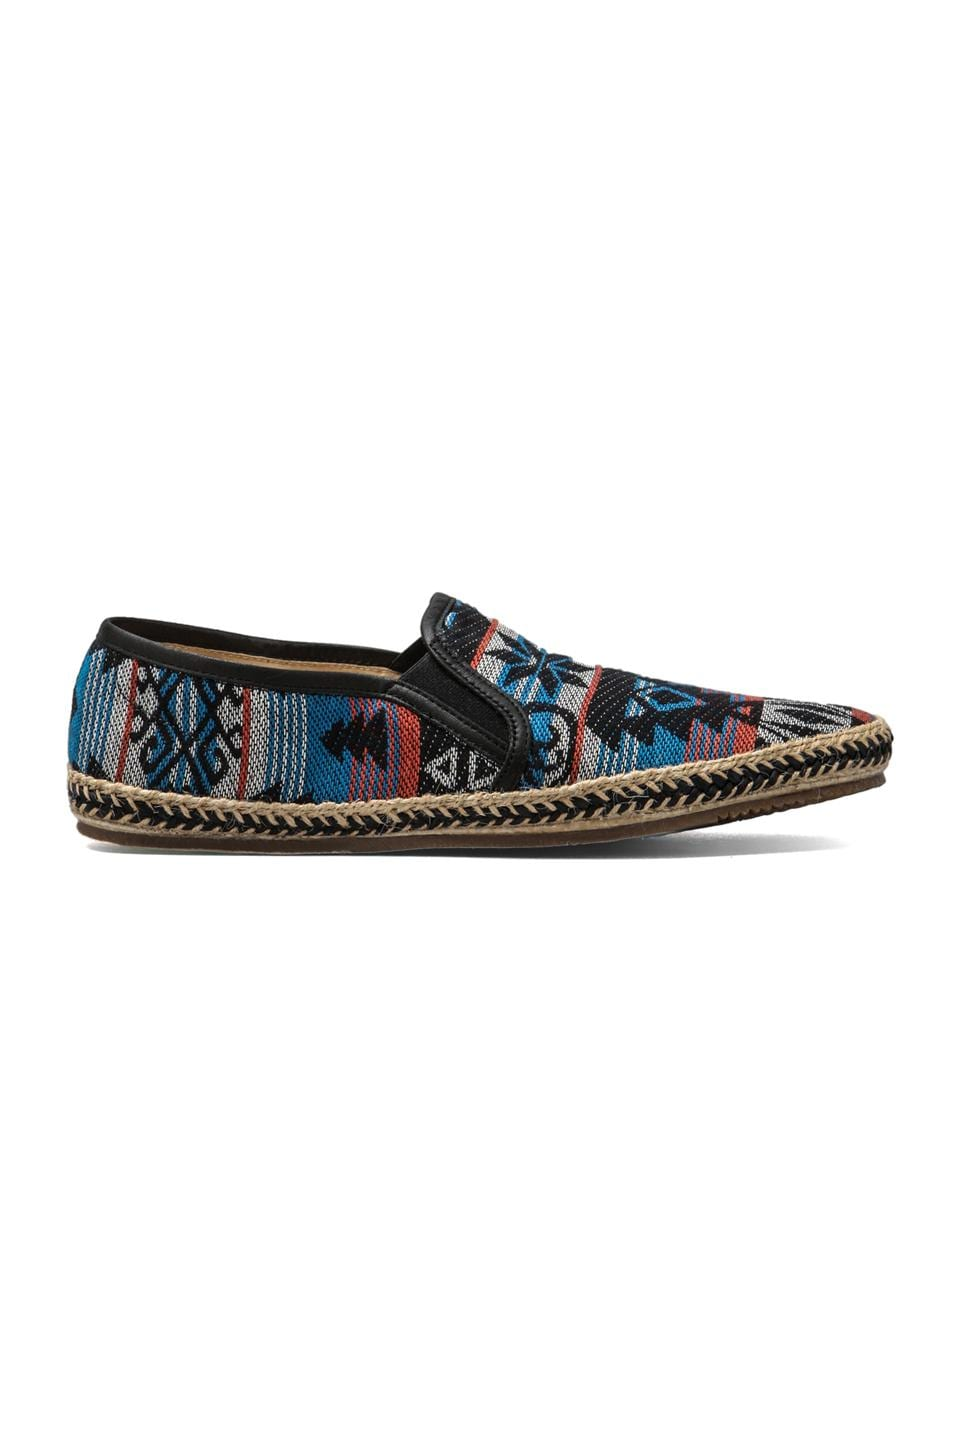 H by Hudson Orca Canvas Slip-On in Blue Multi